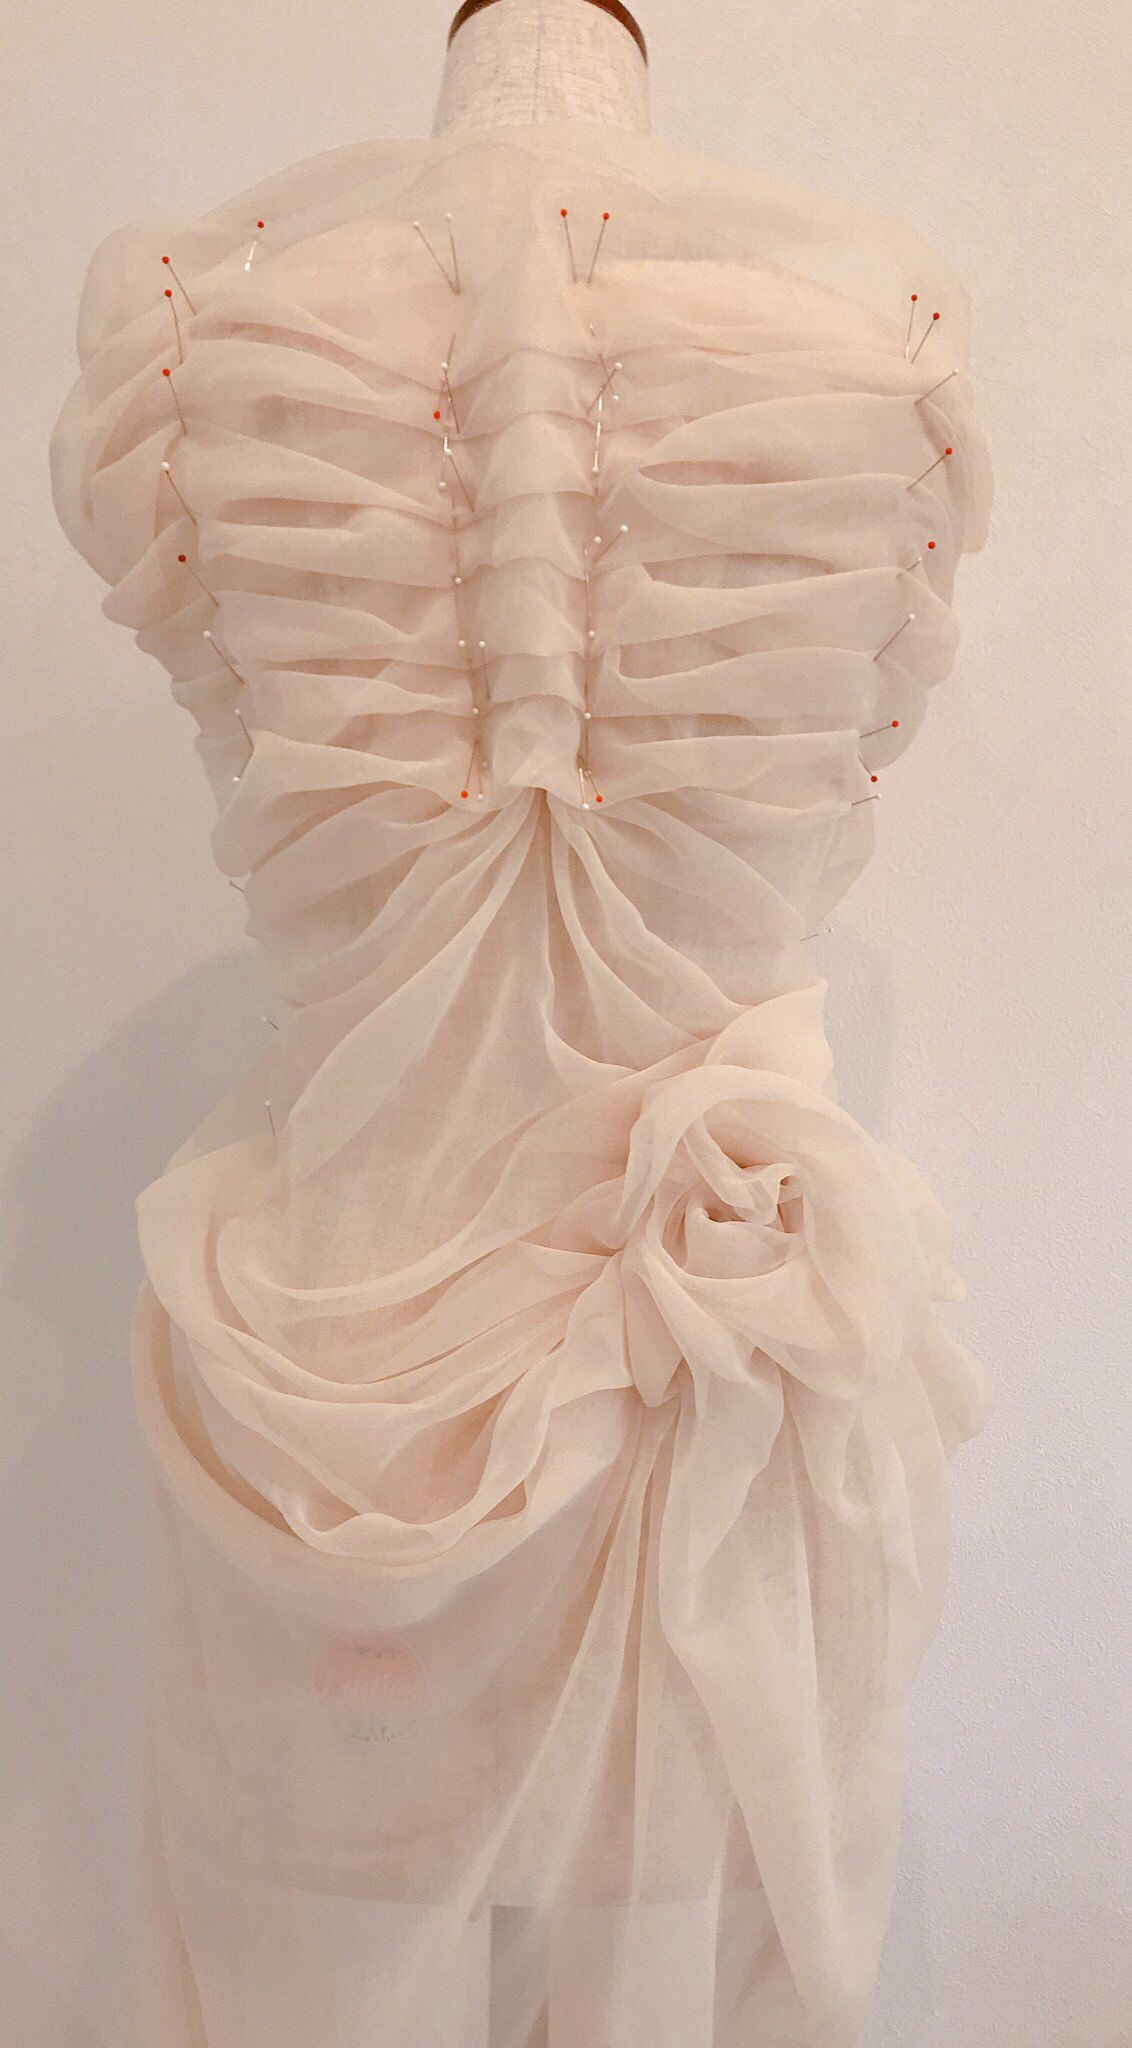 Fragile, and it creases. #fabricmanipulation